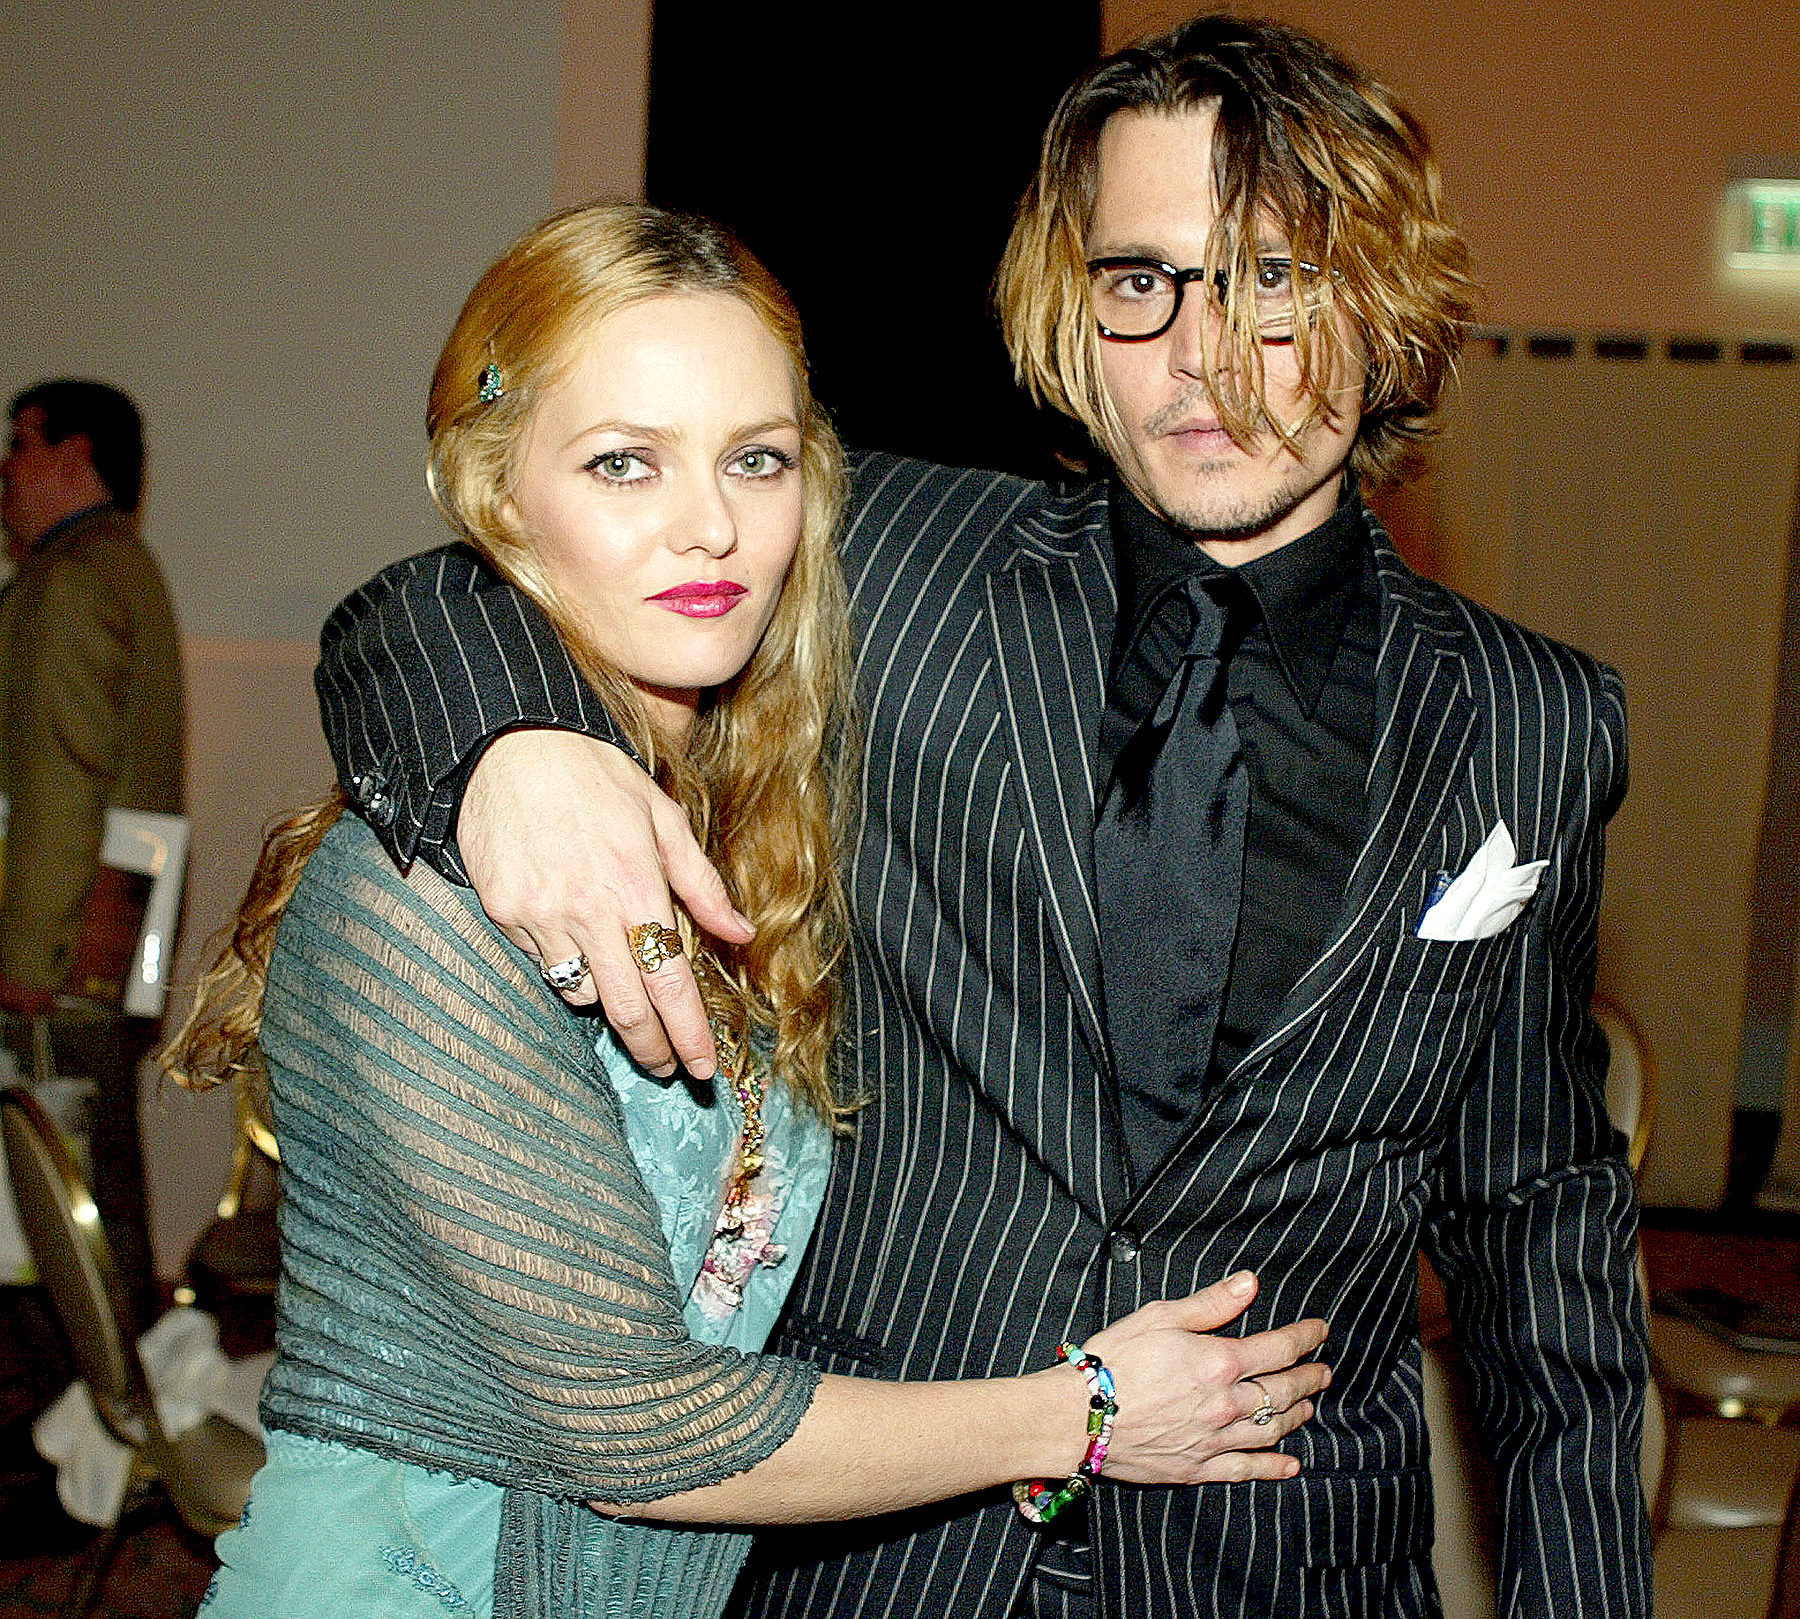 Johnny Depp and Vanessa Paradis pose after The 9th Annual Critic's Choice Awards at the Beverly Hills Hotel on January 10, 2004 in Beverly Hills, California.